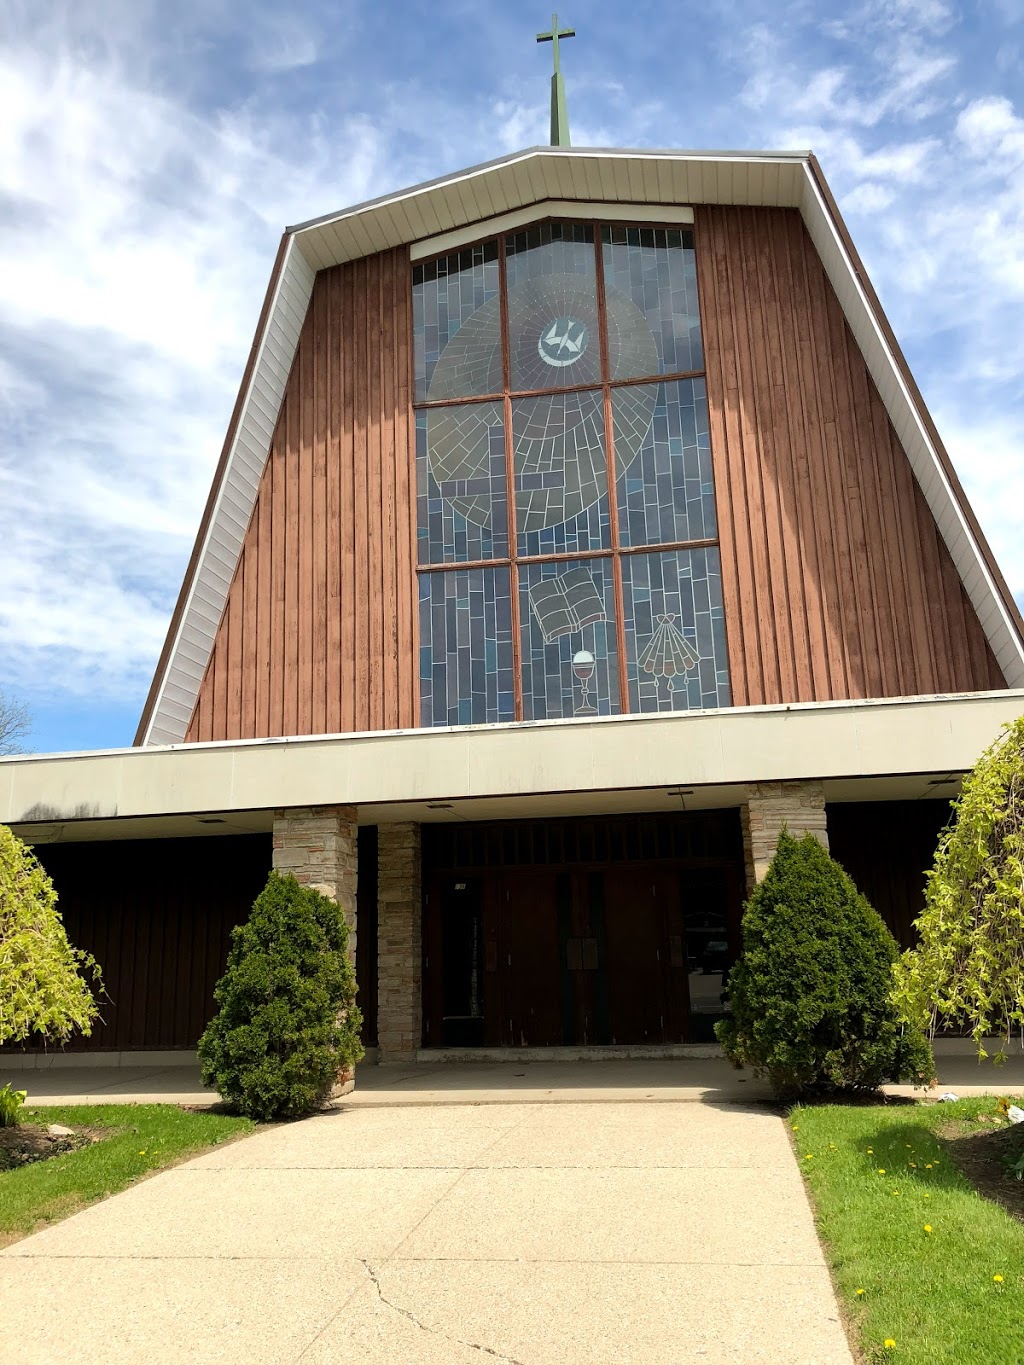 Grace Lutheran Church | church | 136 Margaret Ave, Kitchener, ON N2H 4H9, Canada | 5197427431 OR +1 519-742-7431